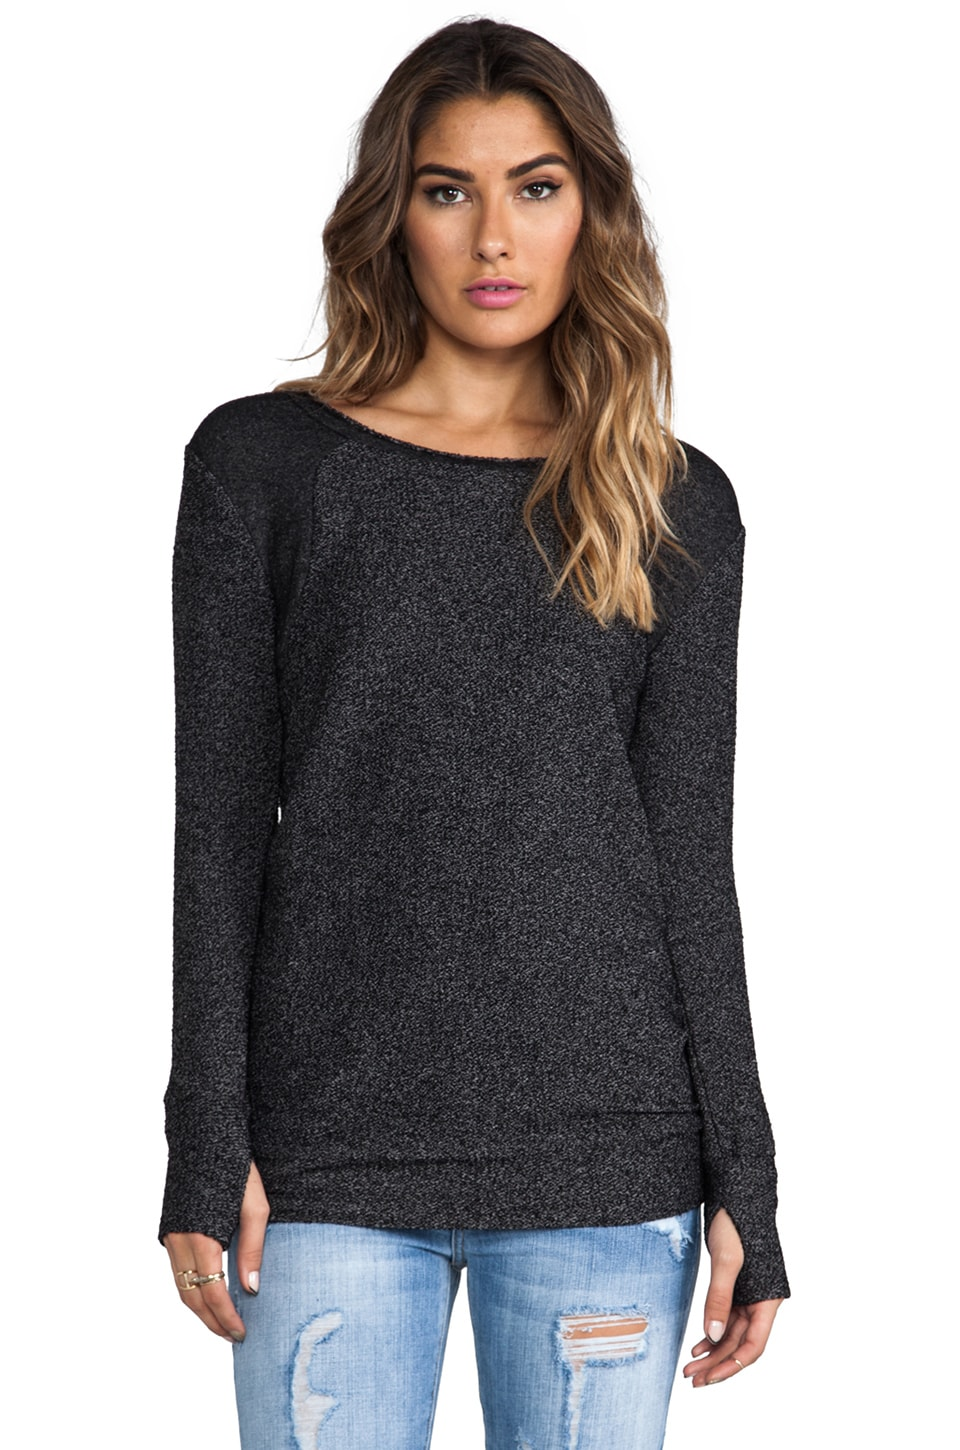 Nation LTD Park Place Tunic Sweatshirt in Black